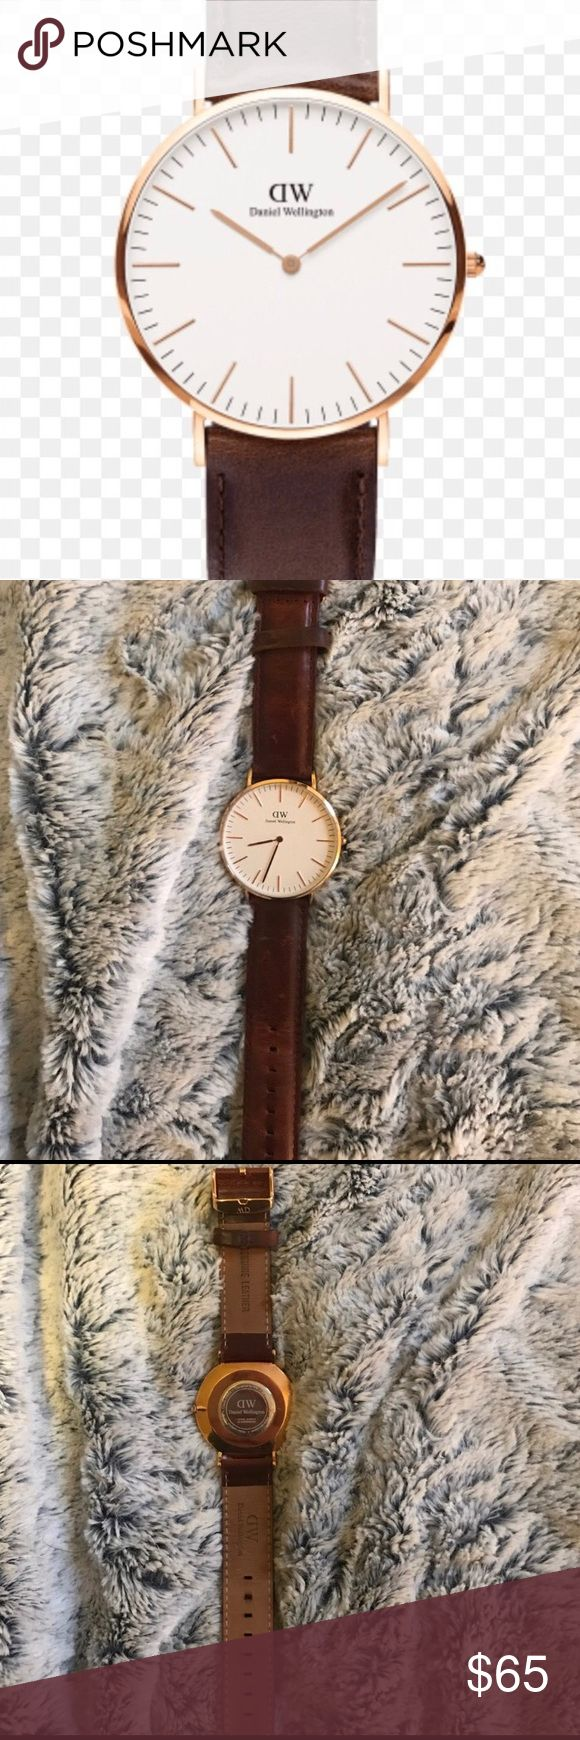 Daniel Wellington worn leather watch Barely worn Daniel Wellington watch. Given to me as a present. Beautiful worn leather and gold hardware details. Needs a new battery. Priced to sell! Daniel Wellington Accessories Watches